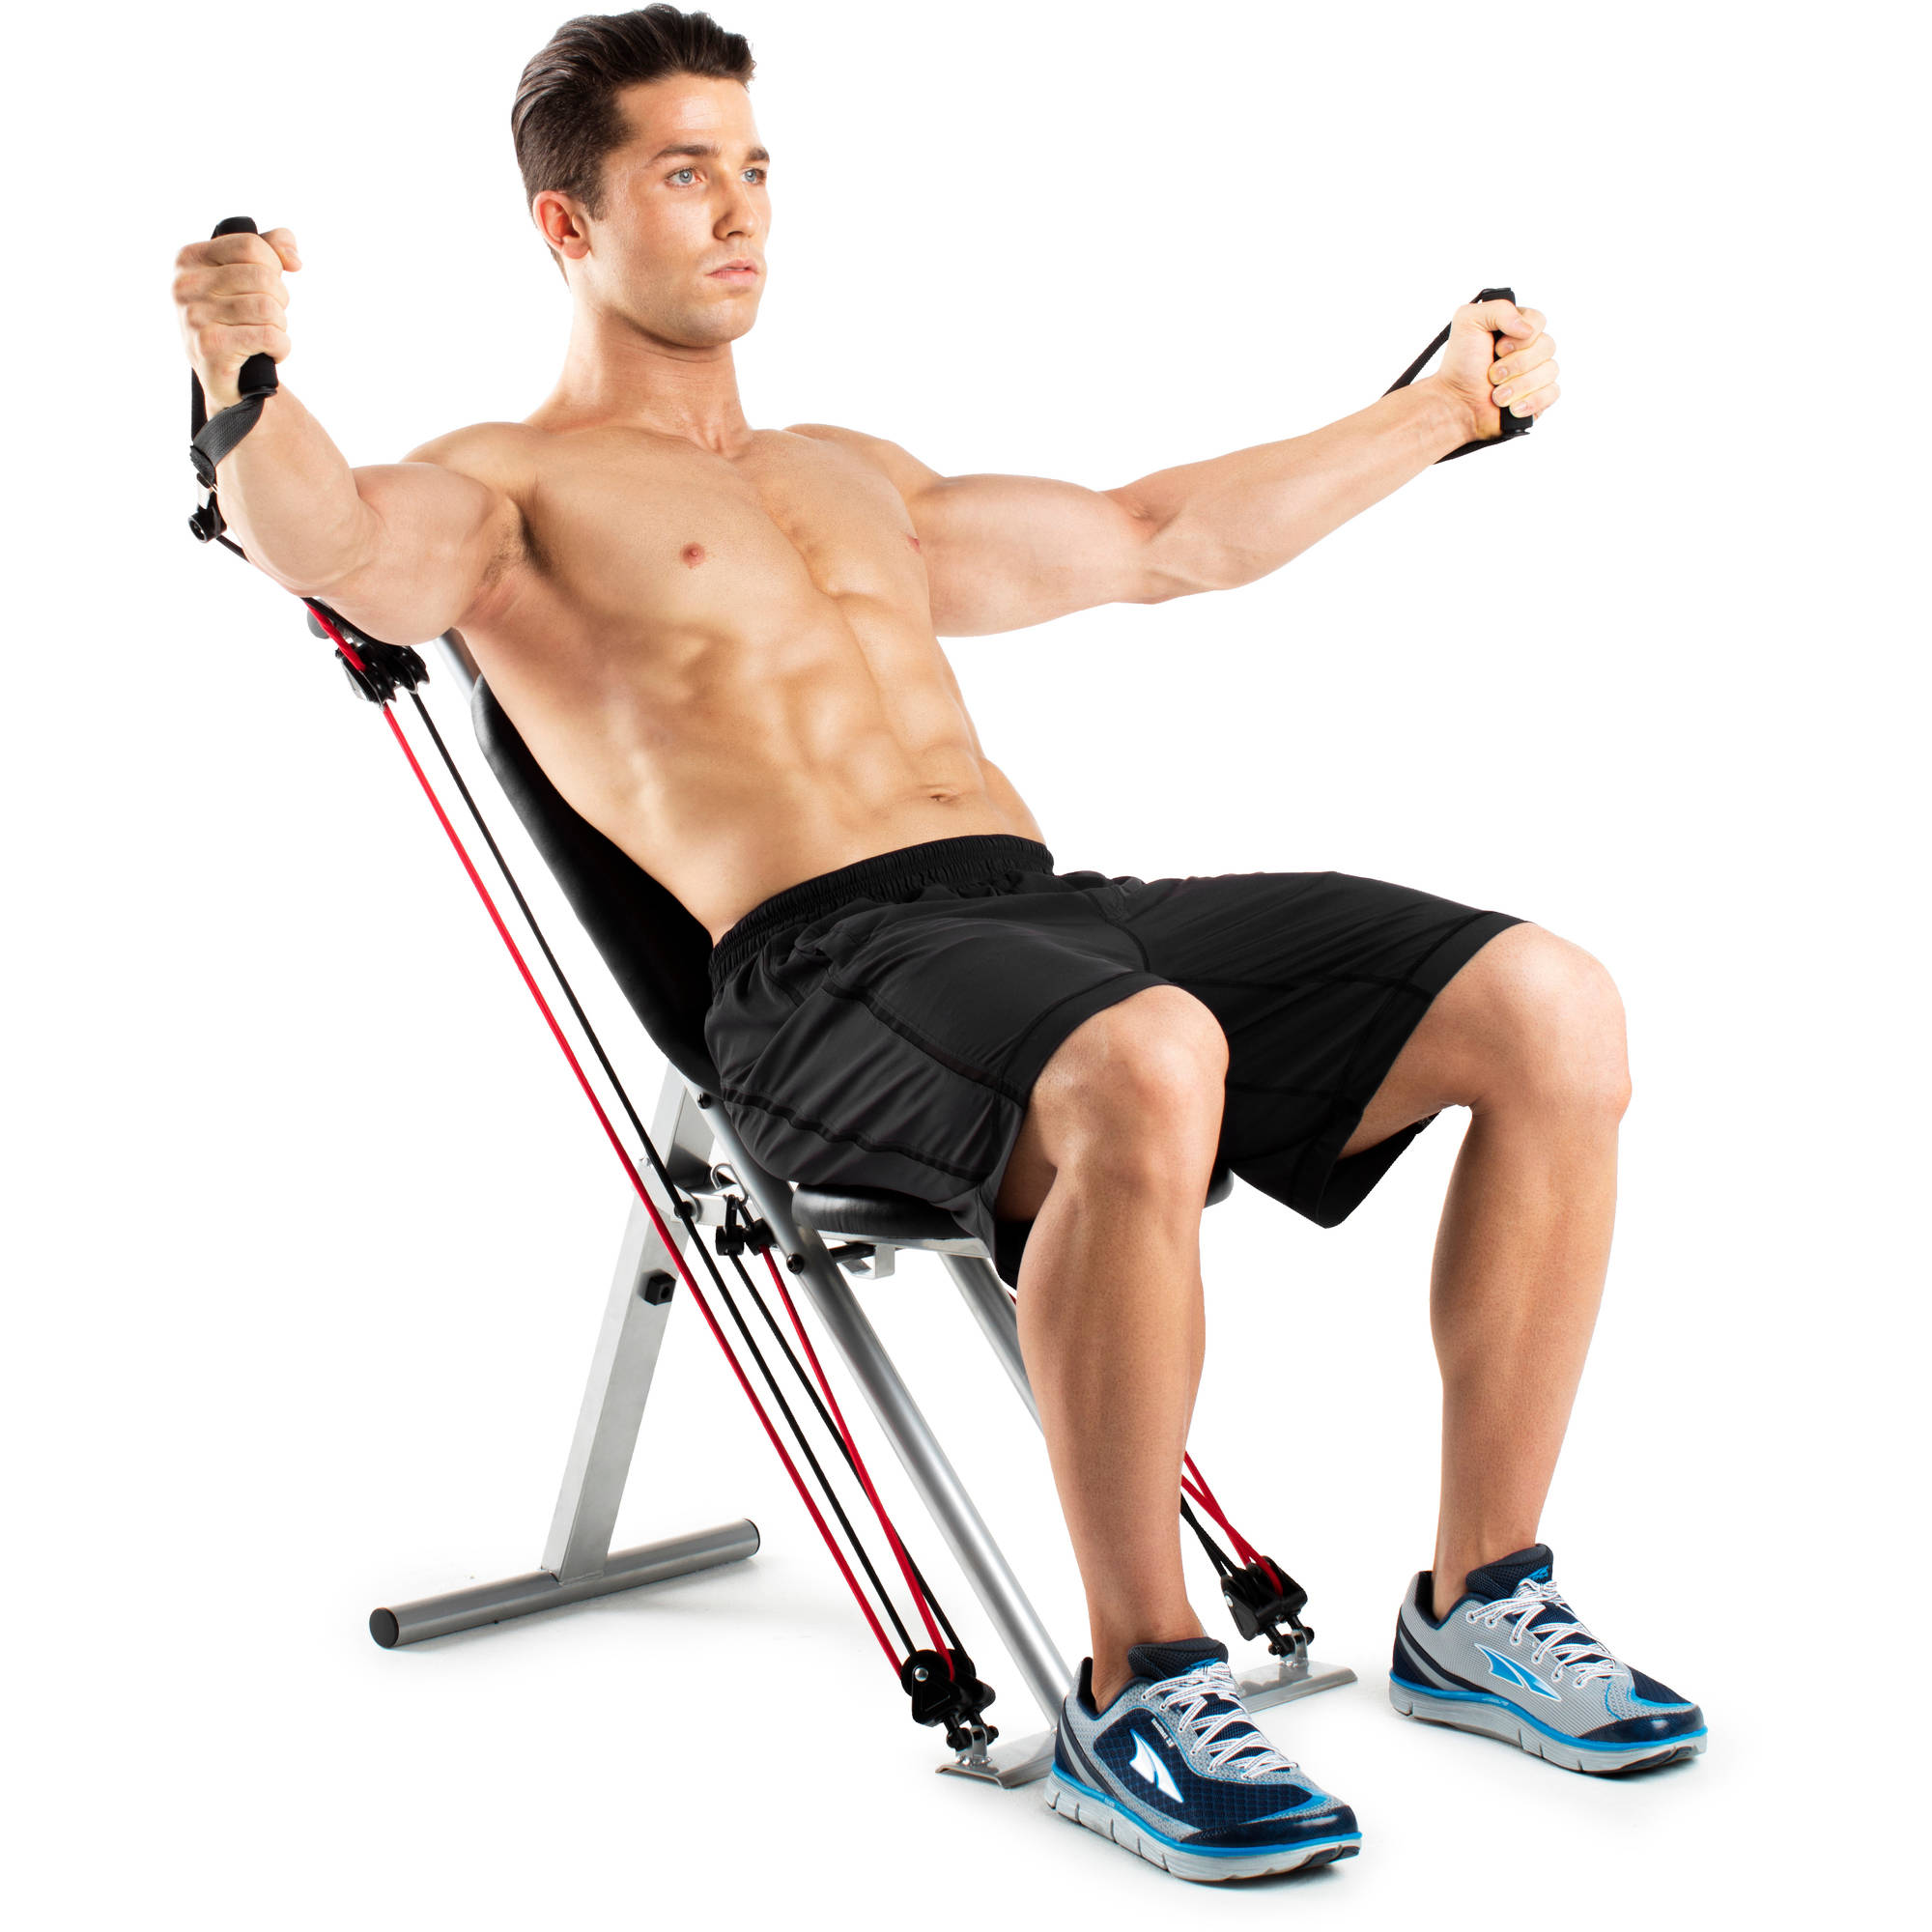 Weider Bungee Bench Total Body Workout System